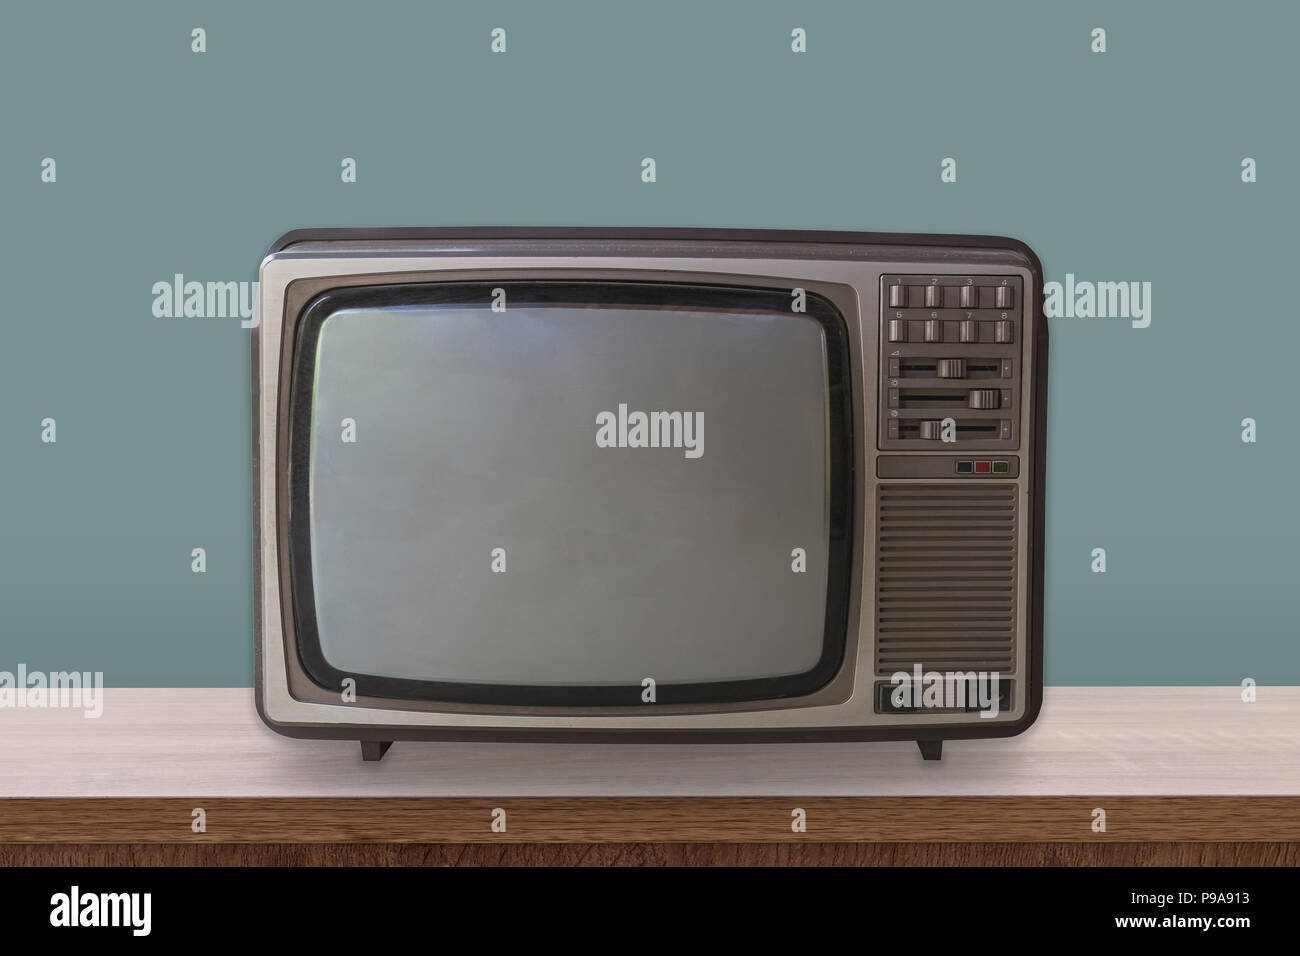 Vintage TV box on wooden table and pastel color background. - Stock Image